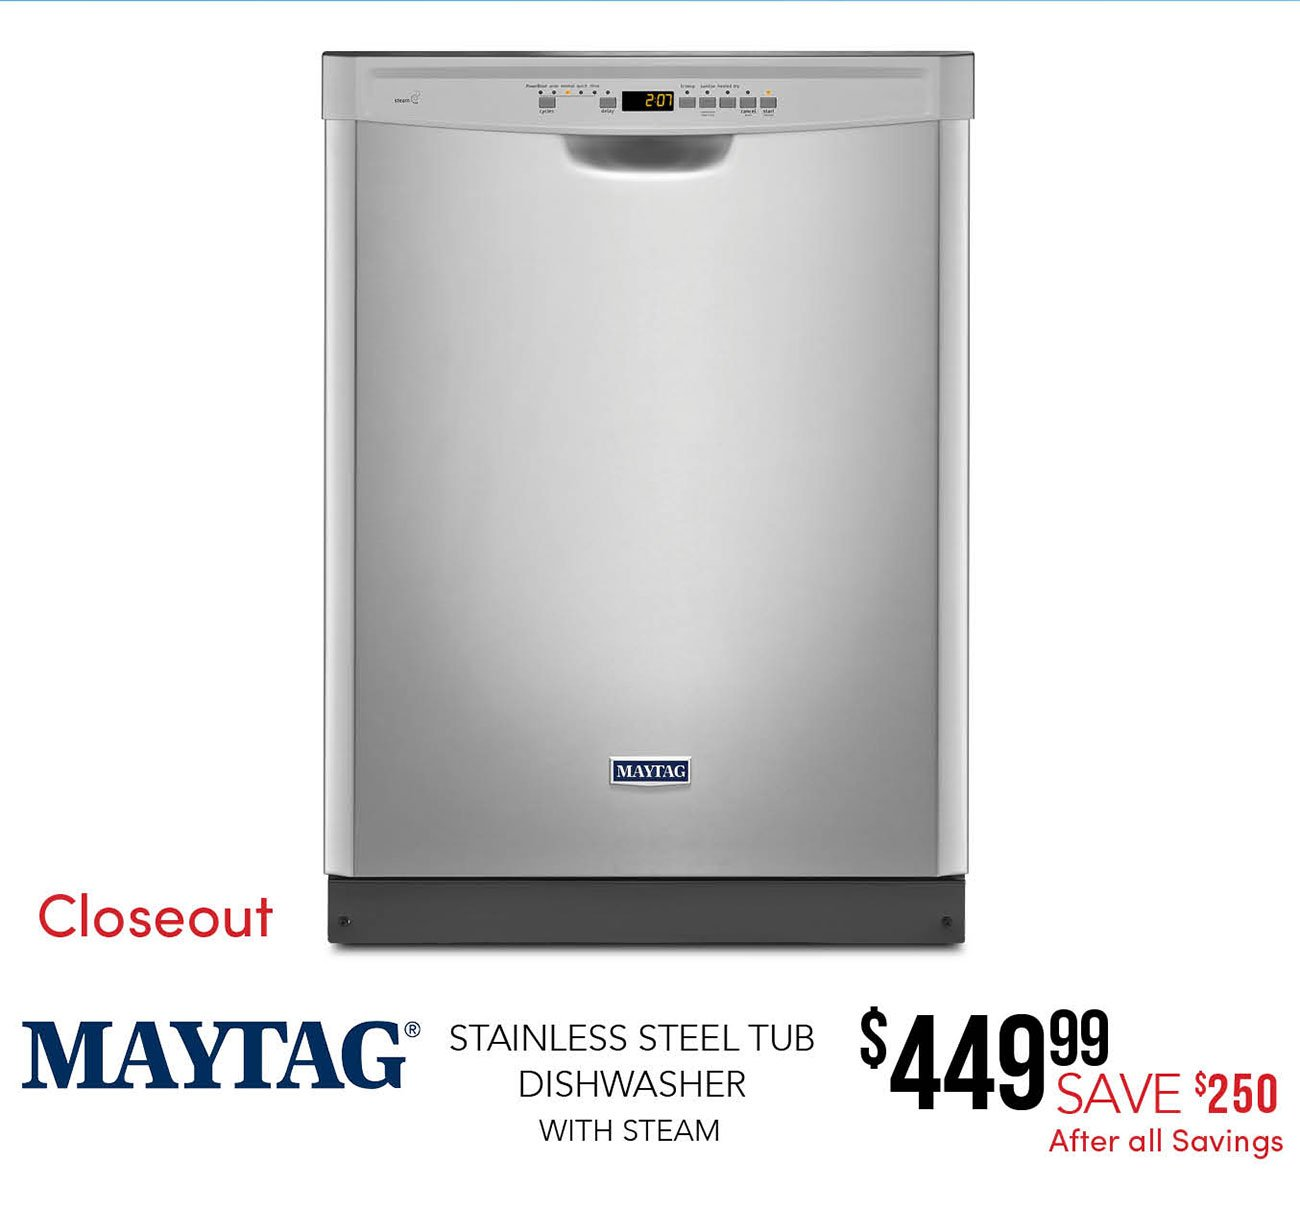 Maytag-Stainless-steel-Dishwasher